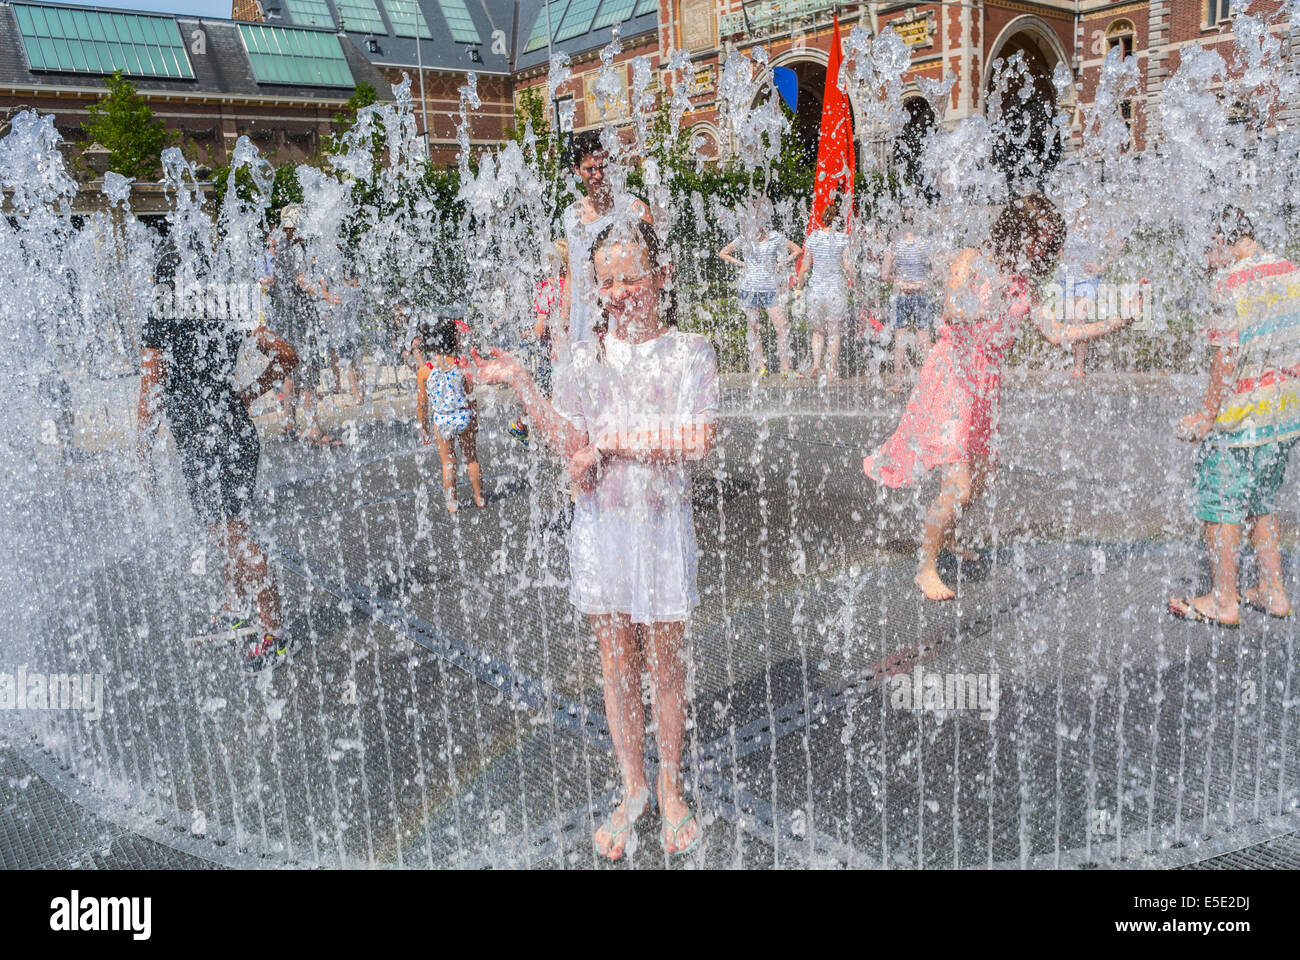 Amsterdam, Holland, The Netherlands, Tourist Children Cooling off in Public Garden Fountains during Summer Heat - Stock Image